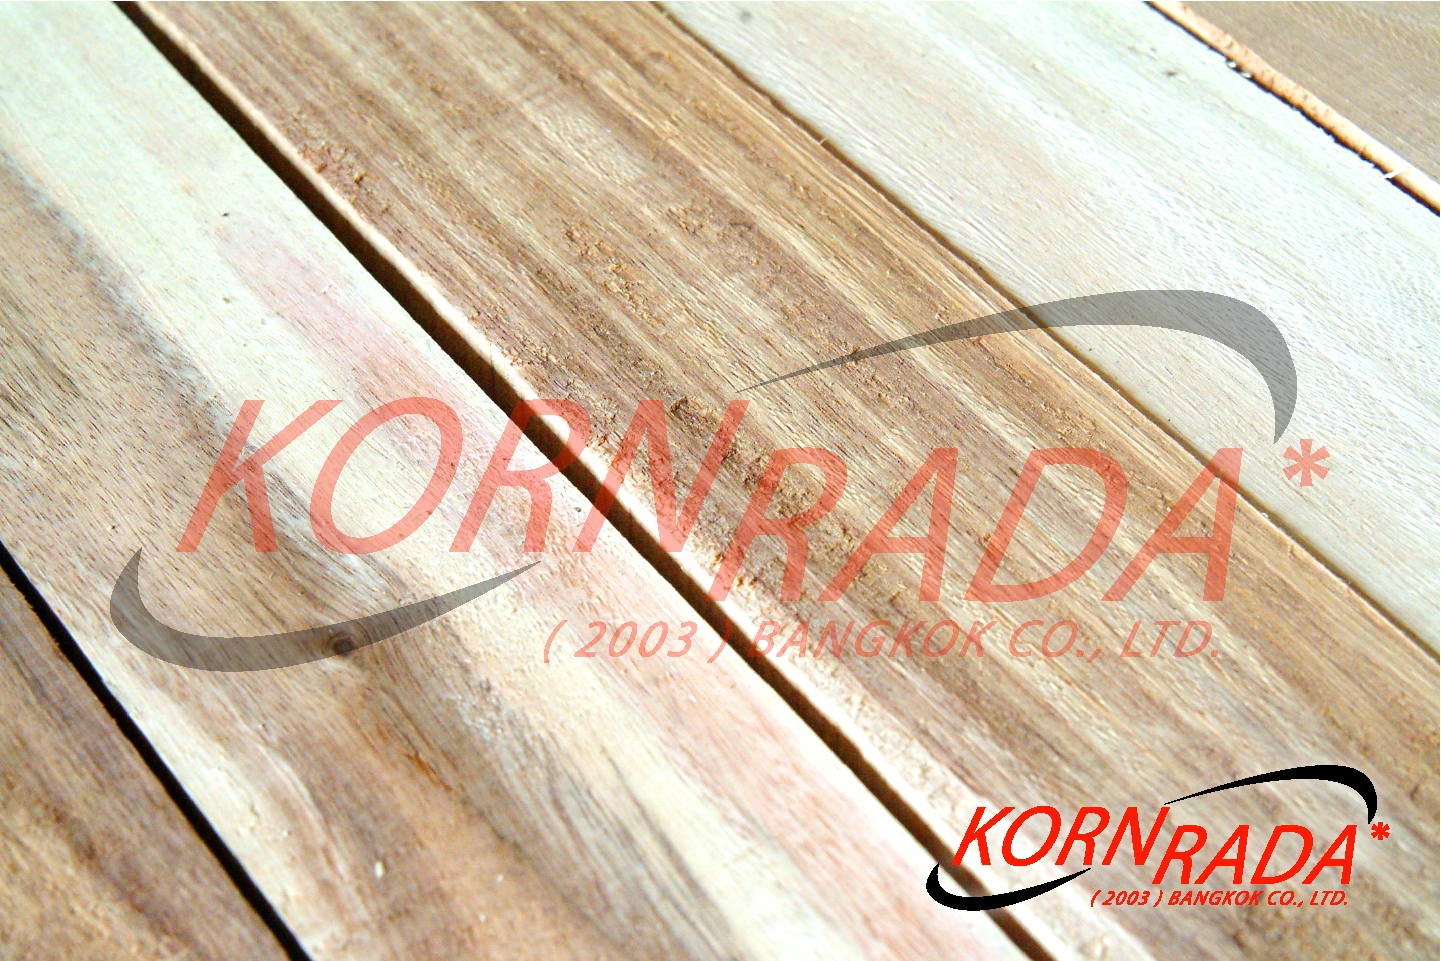 kornrada_products_2185